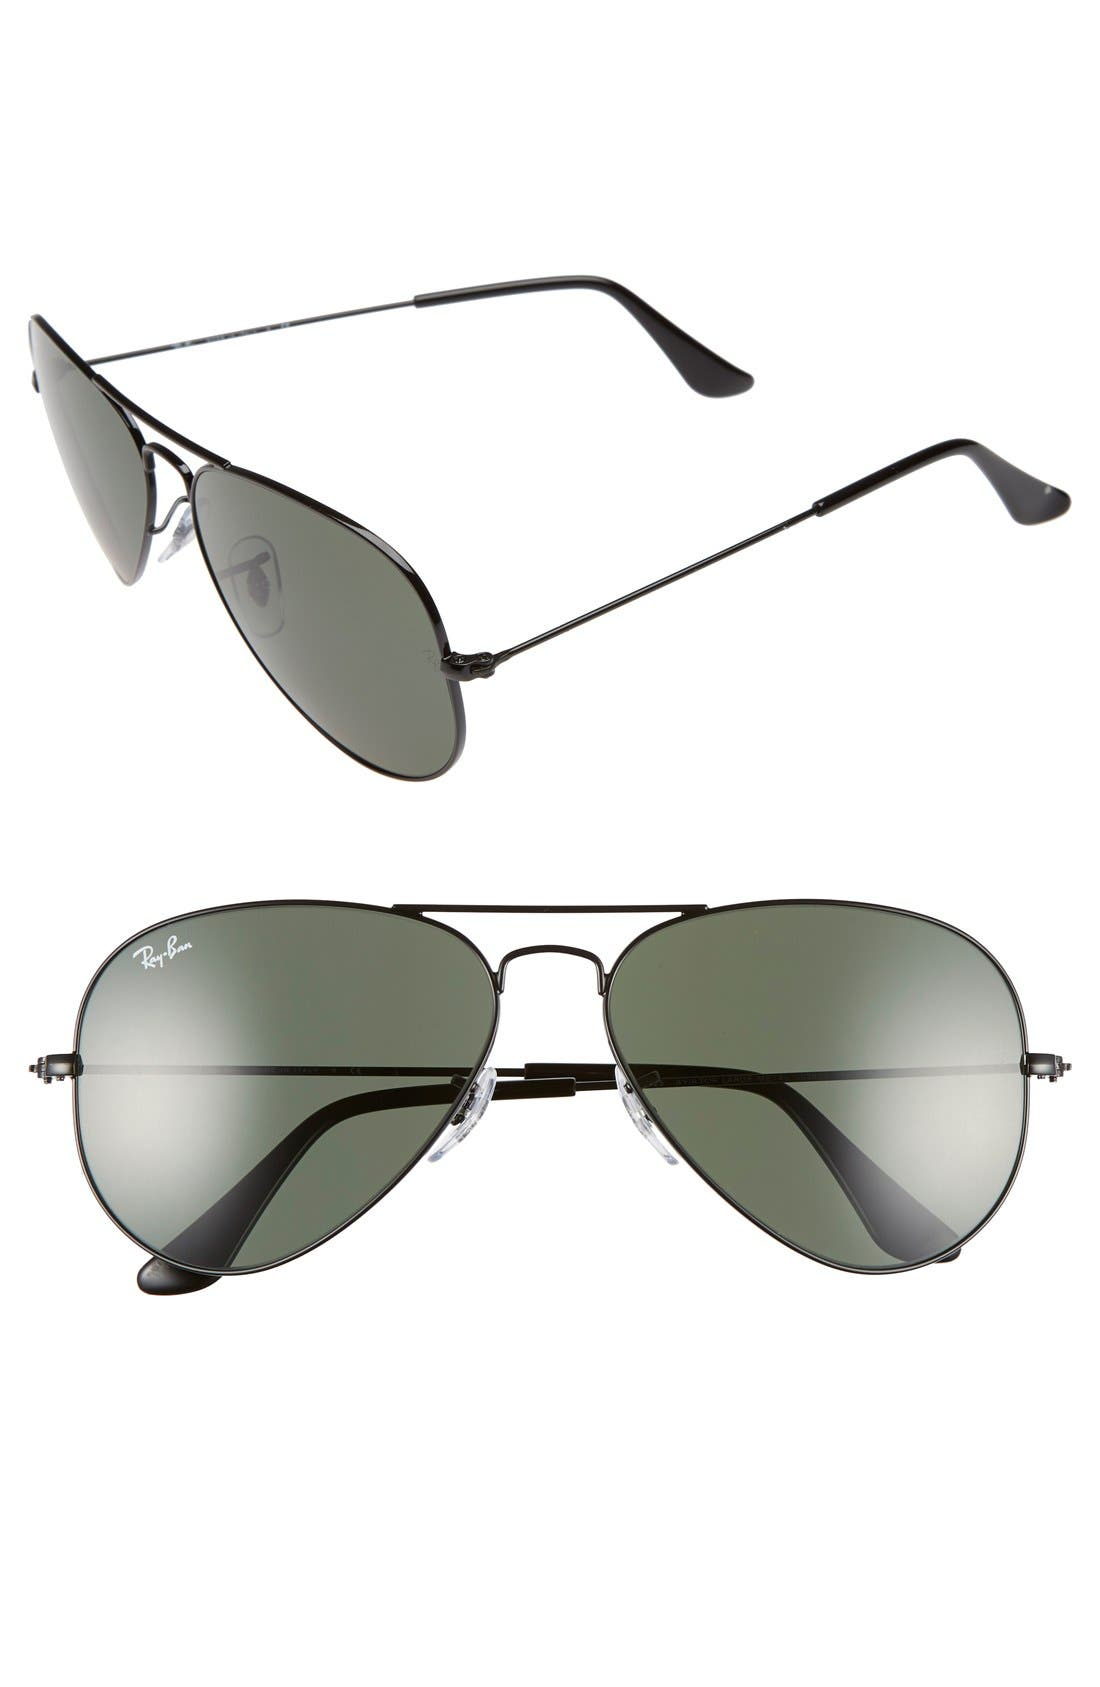 Standard Original 58mm Aviator Sunglasses,                             Main thumbnail 1, color,                             Black